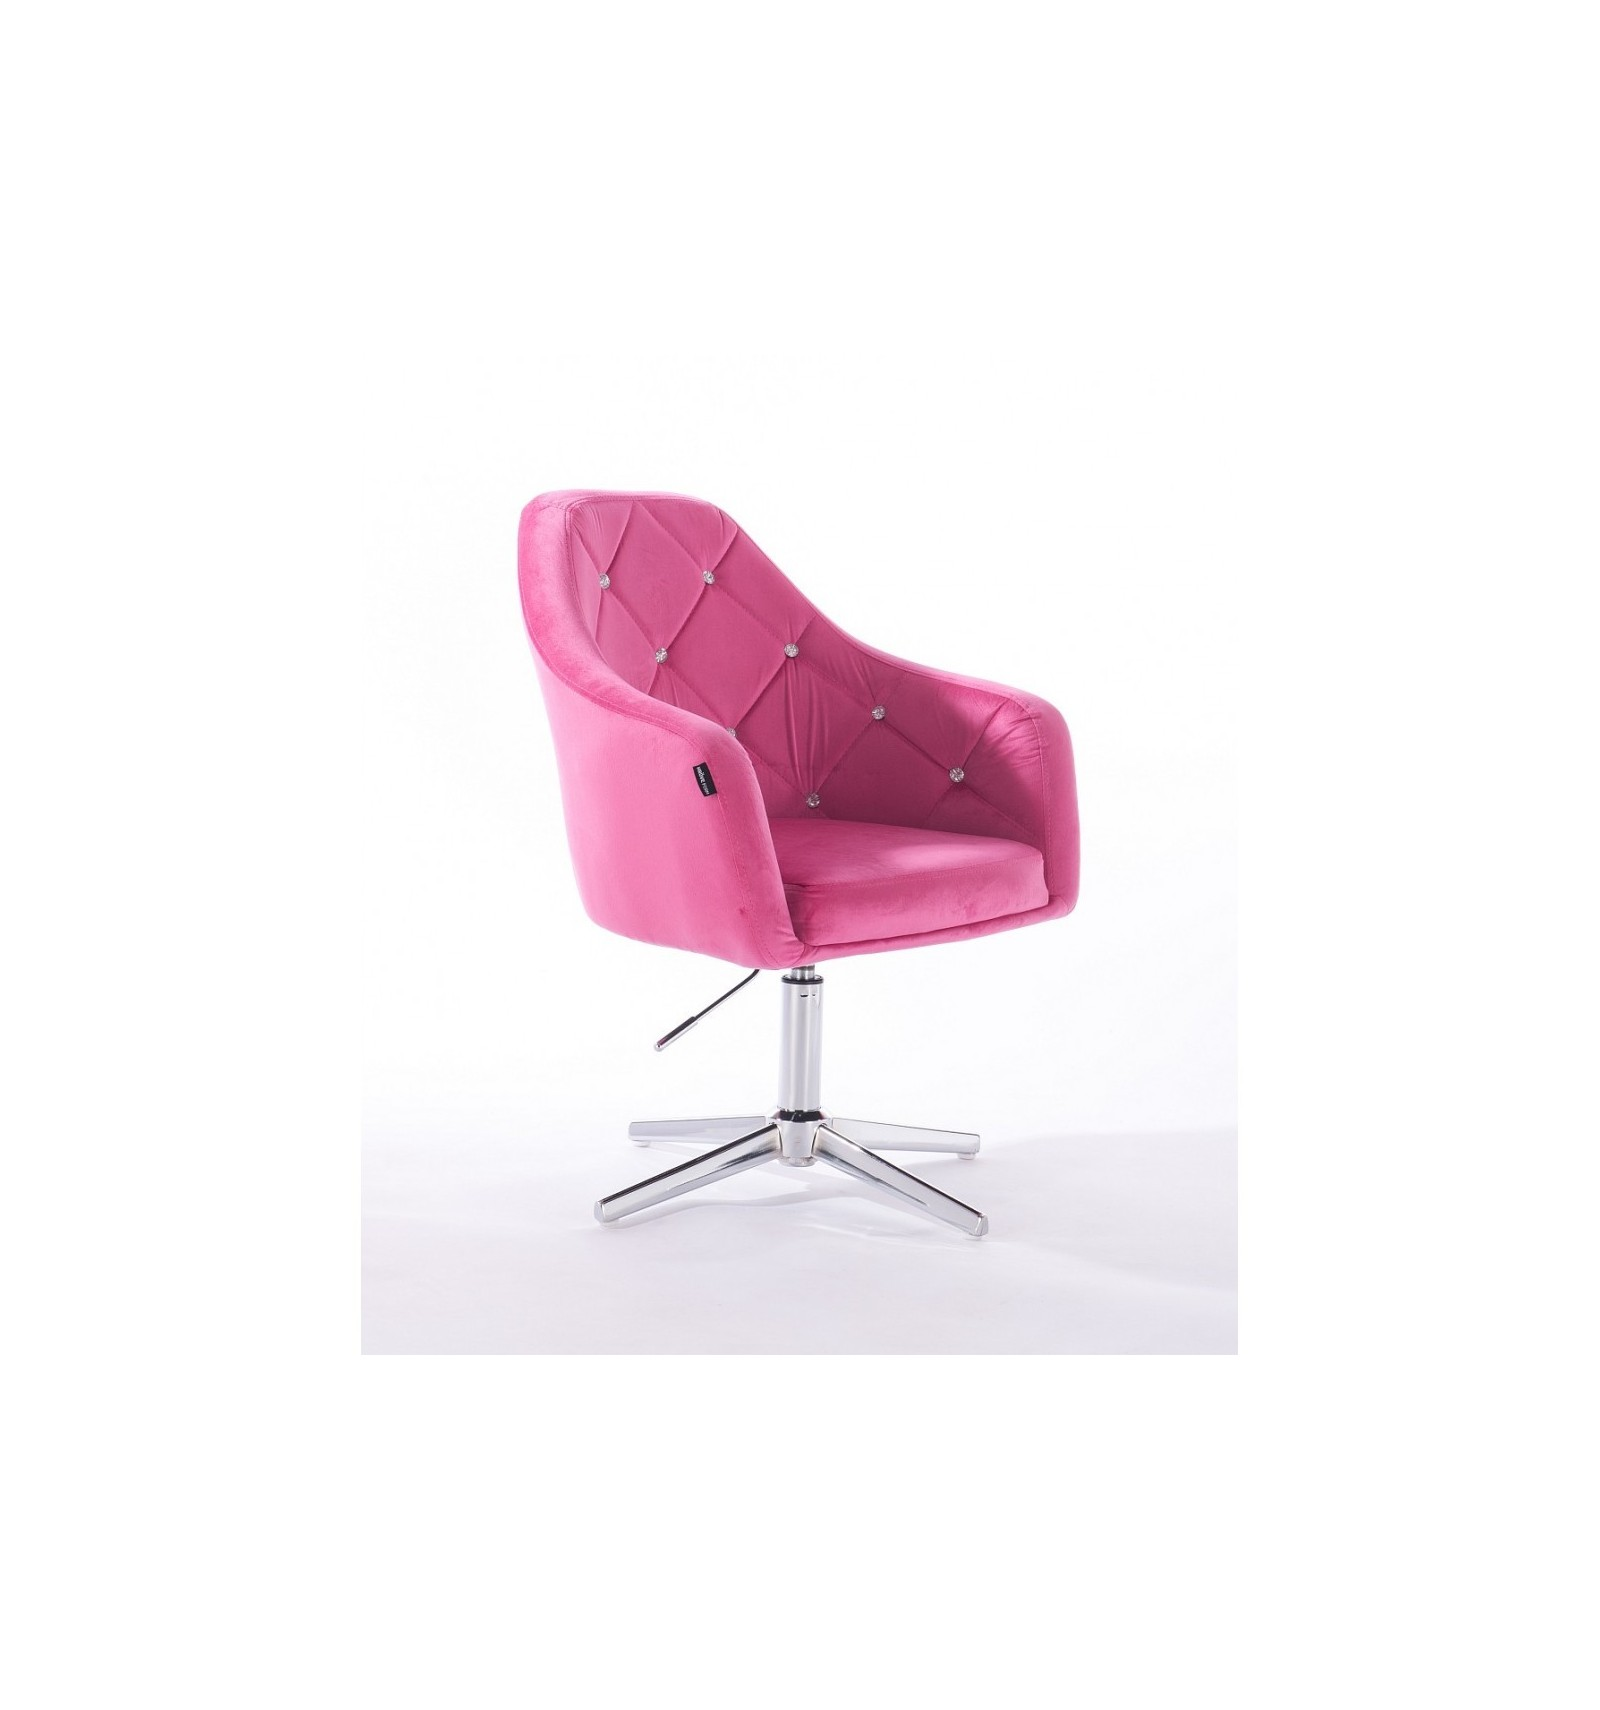 Hroove Salon Chair Pink Bella Furniture Ireland Hr830cross